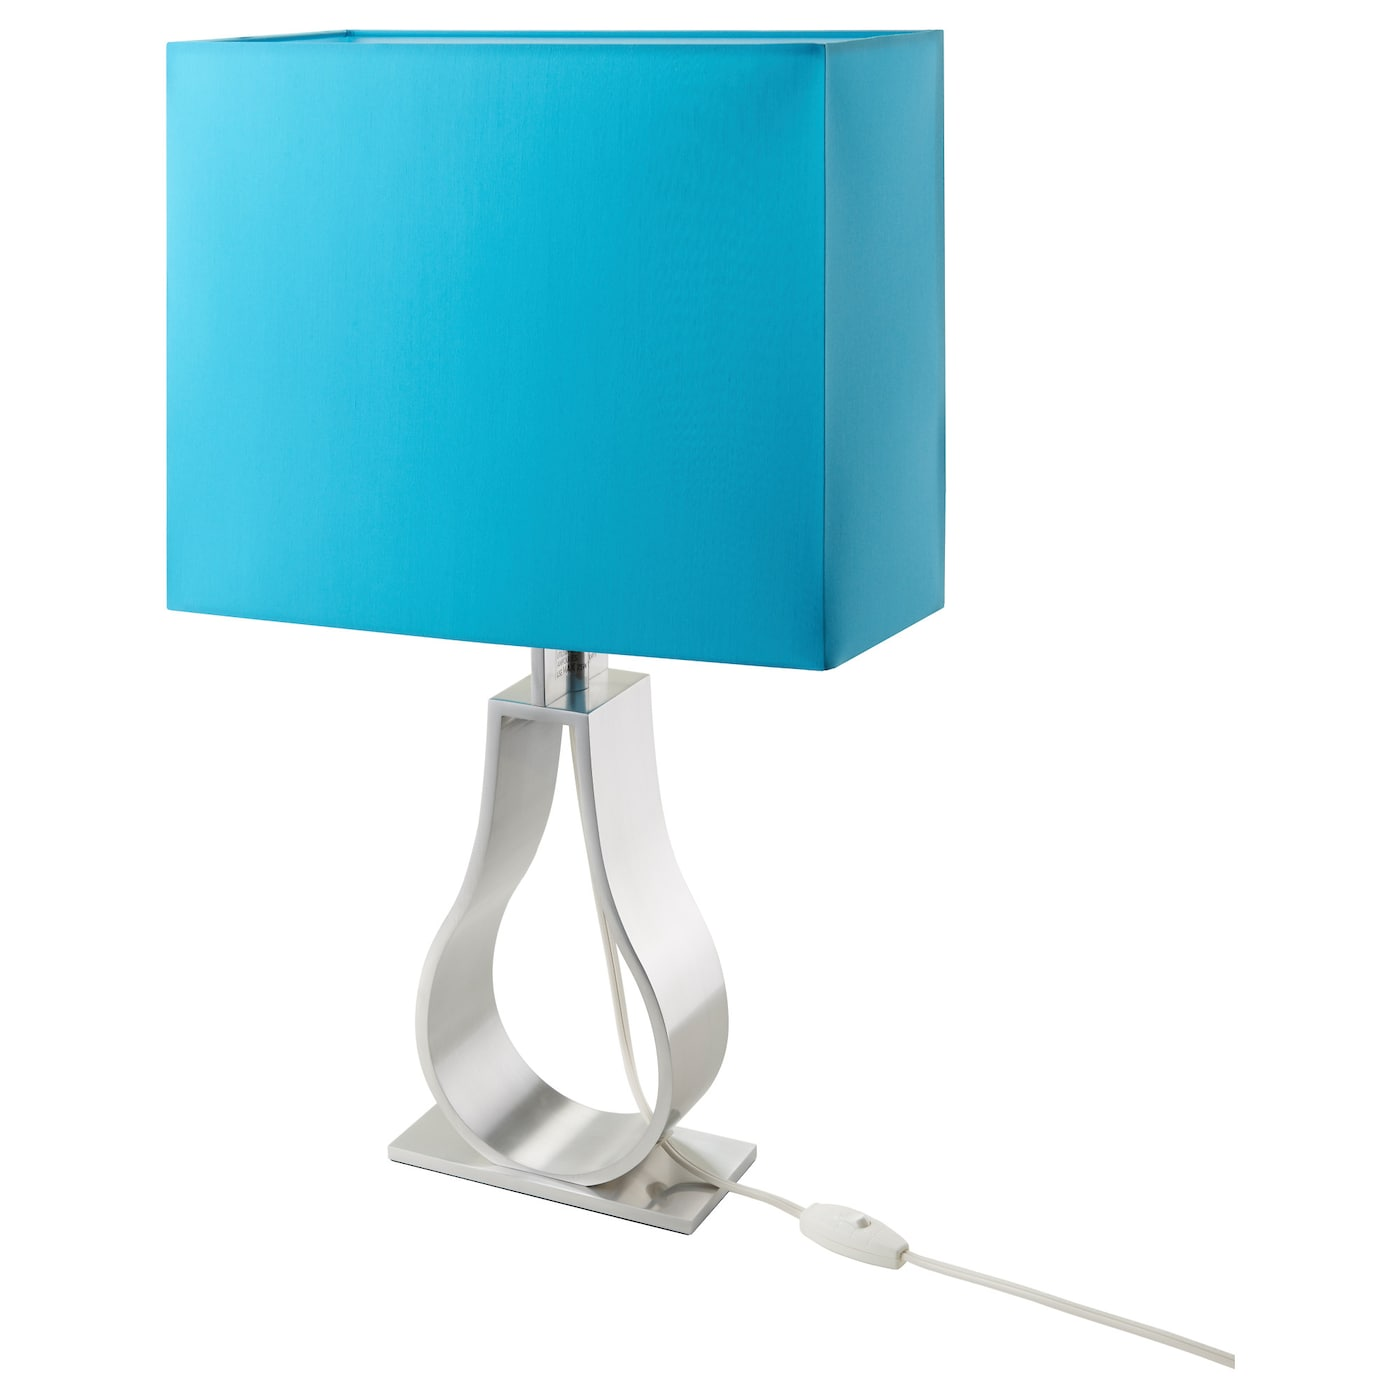 IKEA KLABB table lamp